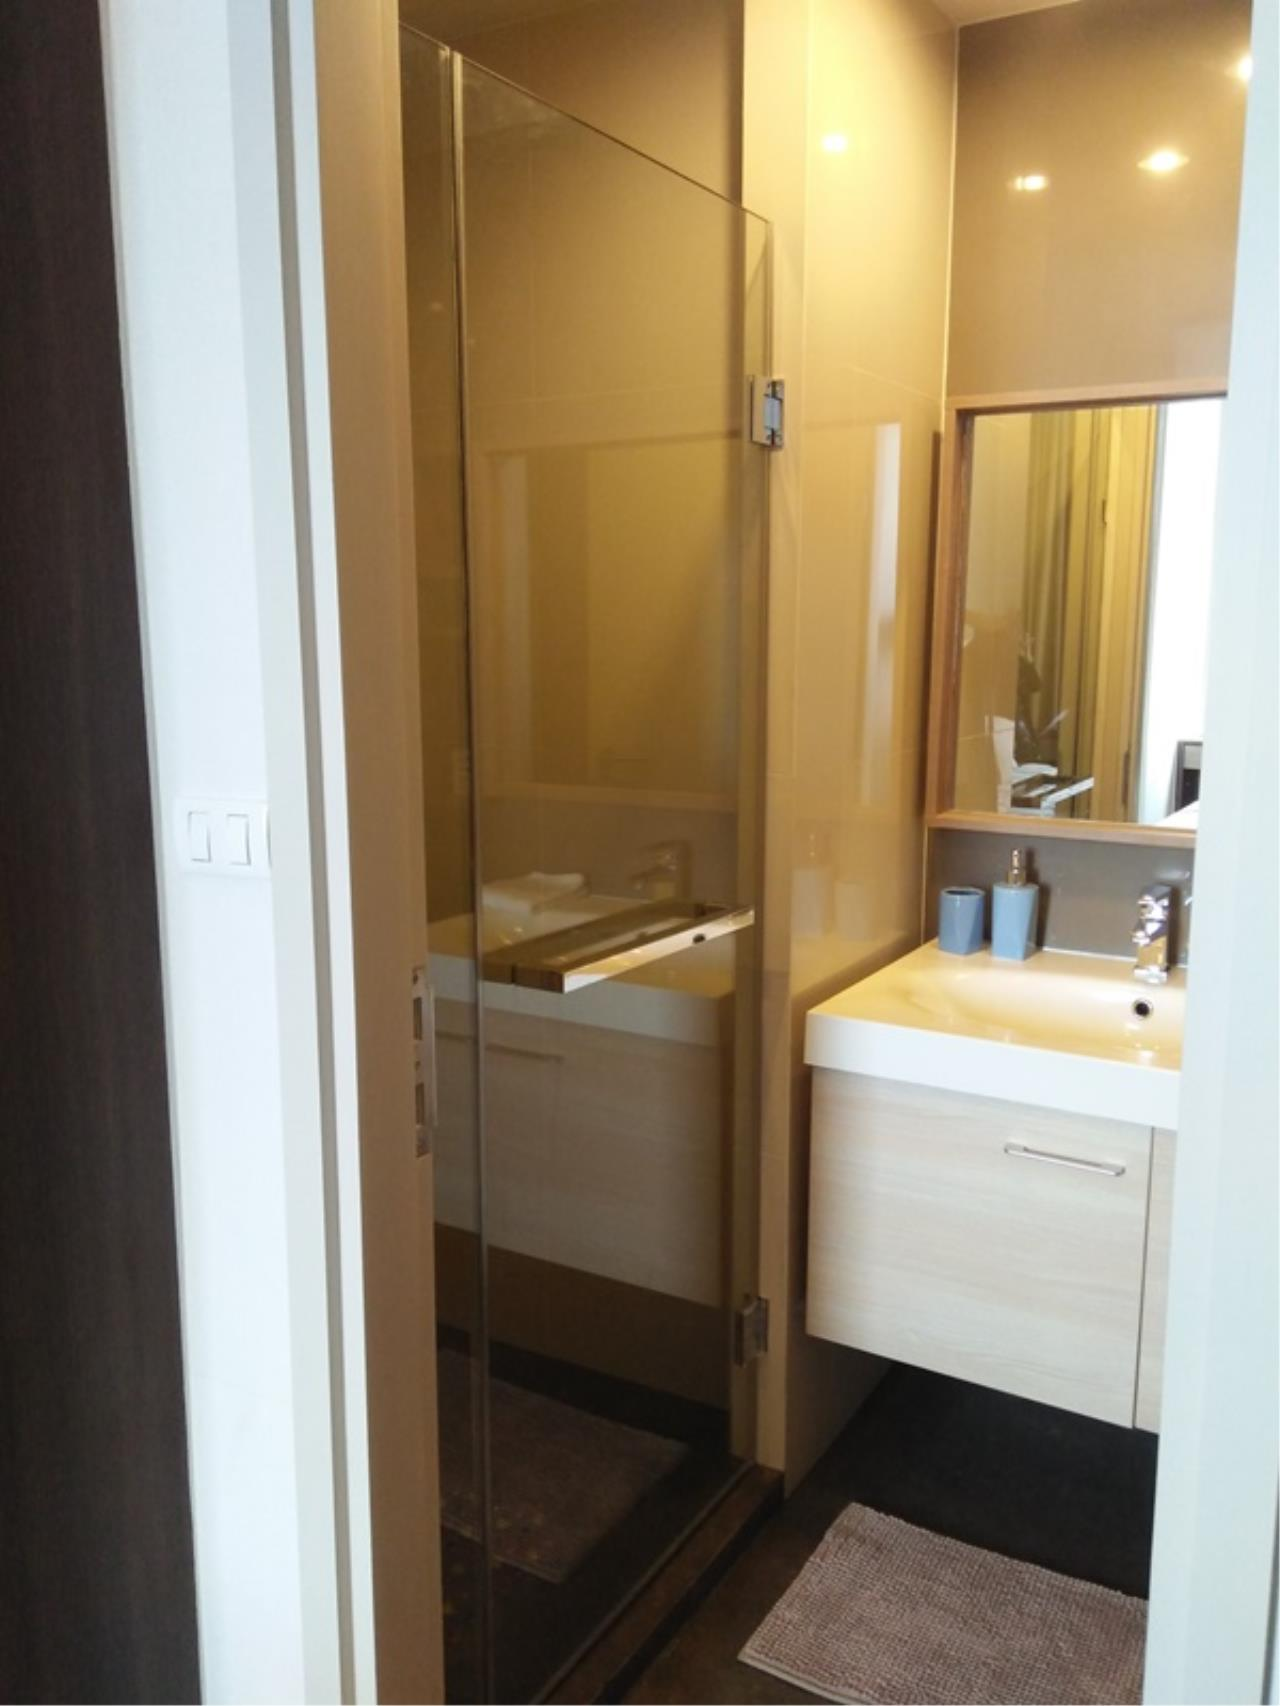 Siam Prop Agency's The Capital Ekamai - Thonglor Luxury Condo, 2 bedrooms for rent with 4-meter ceiling height 11